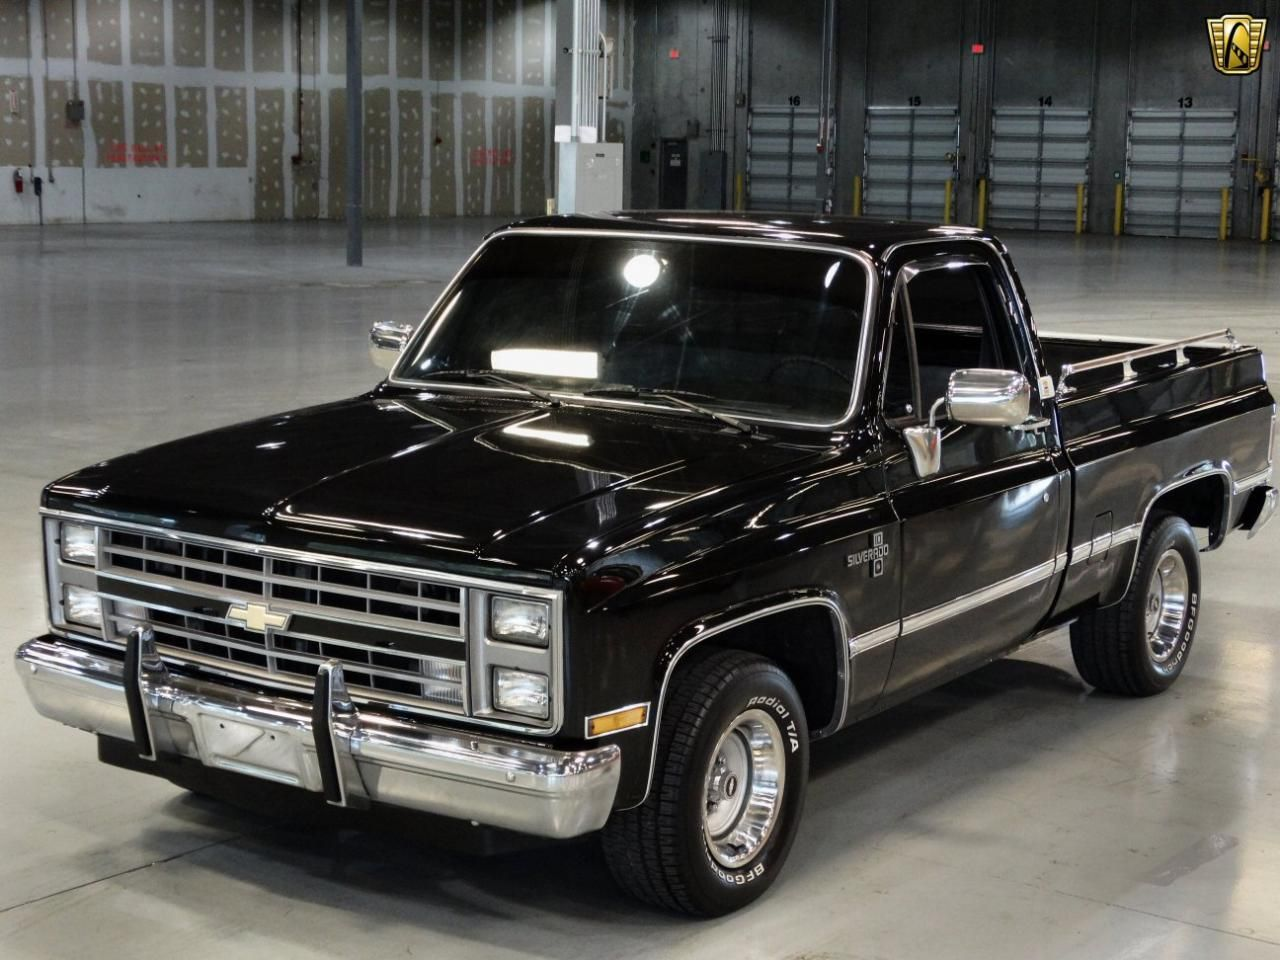 Pickup 86 chevy pickup : 86 chevy truck pictures | 1986 CHEVY SILVERADO :: David Gonzales ...